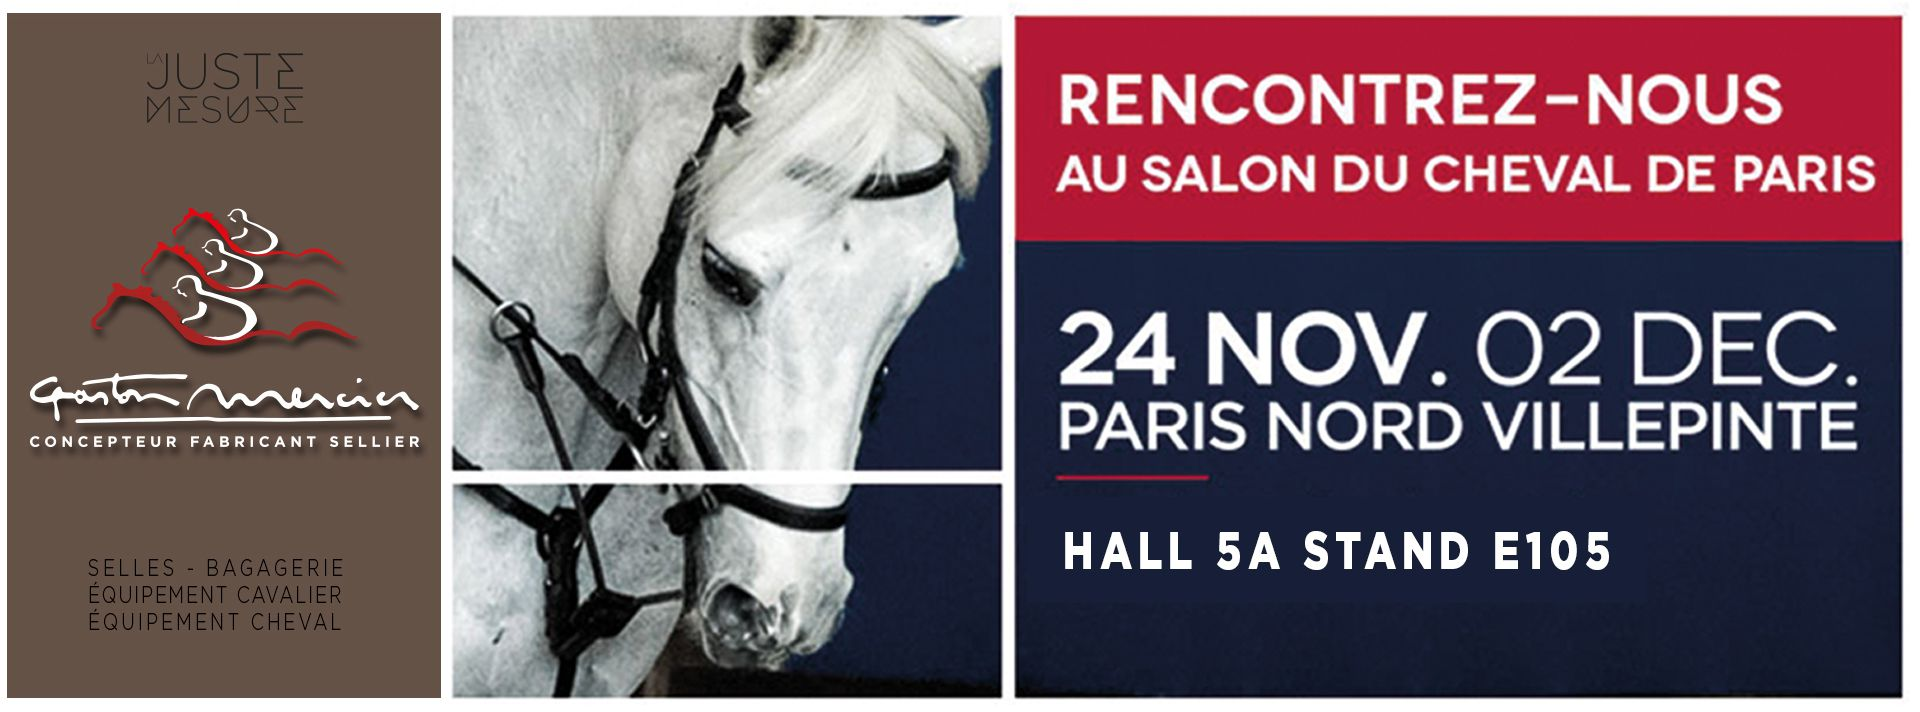 Rencontrez la sellerie Gaston Mercier au Salon du Cheval de Paris 2018